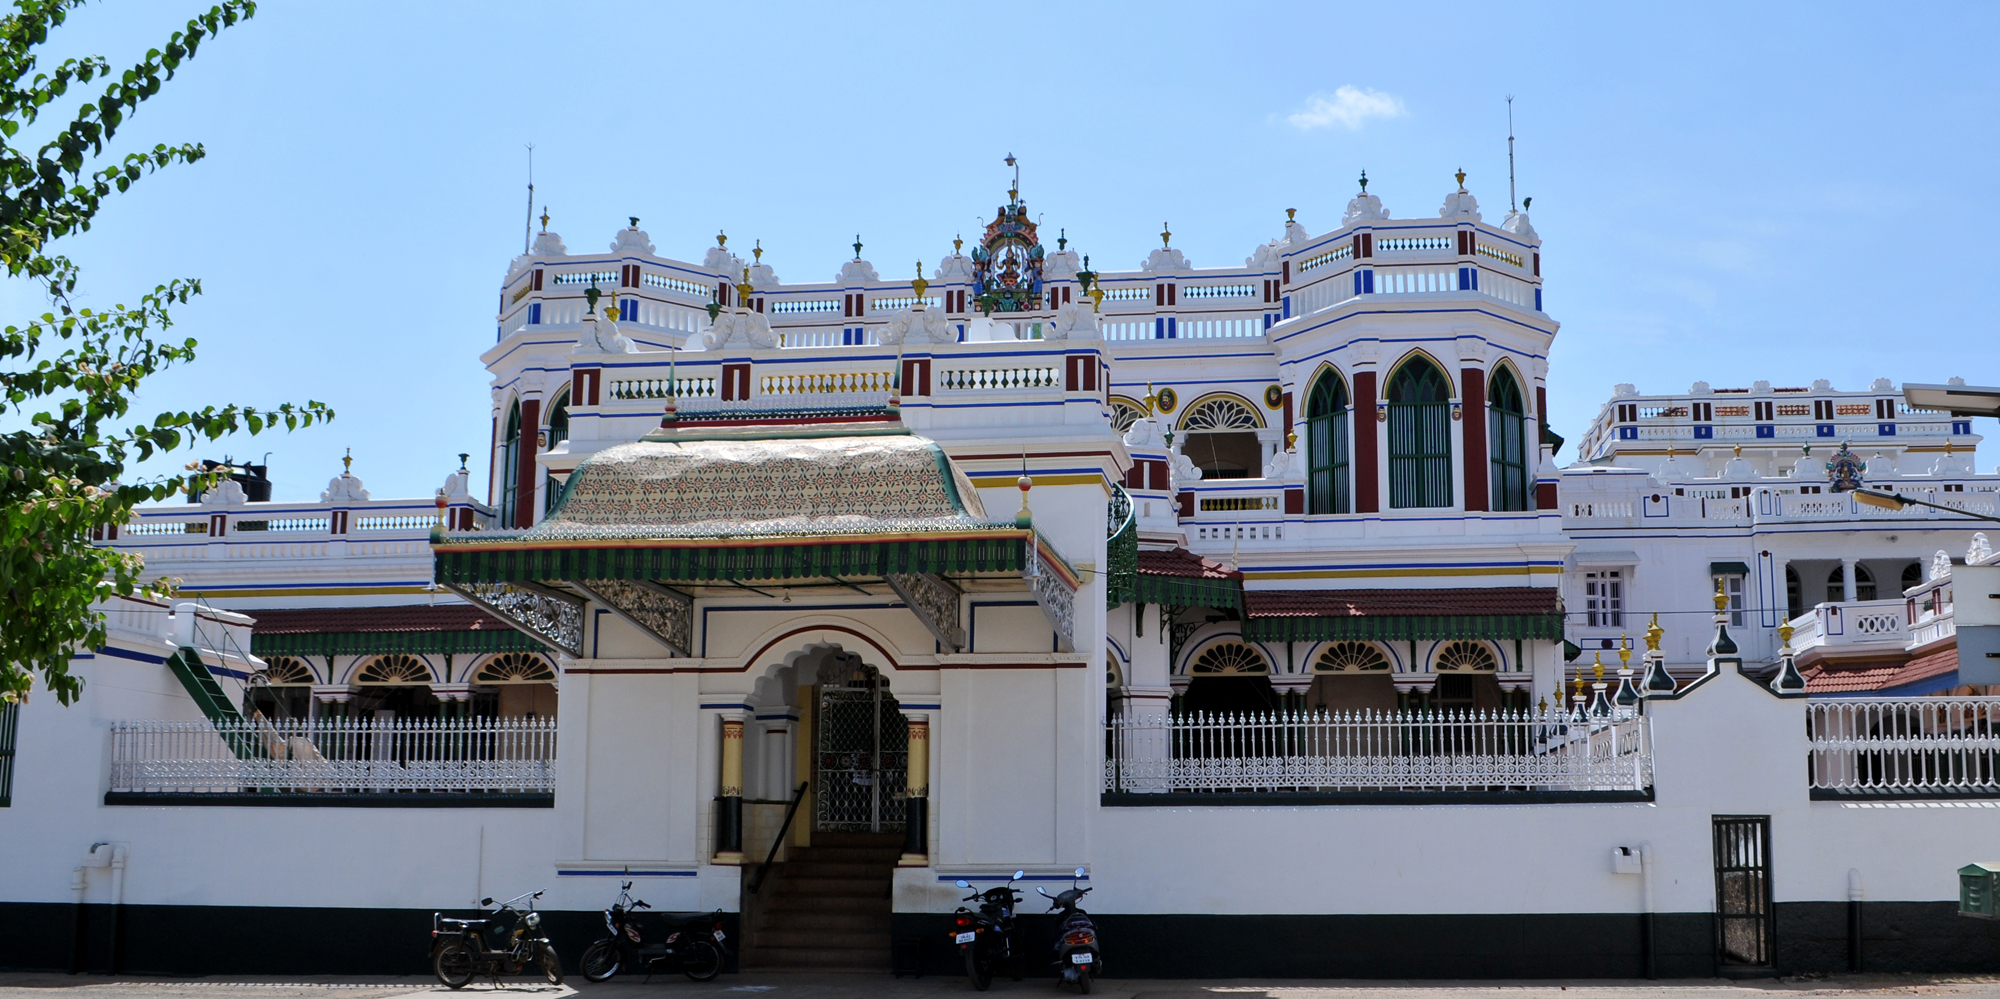 <strong>Palatial Mansion,Chettinad  </strong> - A palatial mansion in Chettinad looks magnificent with its elaborate facade. Chettinad is home to an interesting merchant community and their world famous mansions.